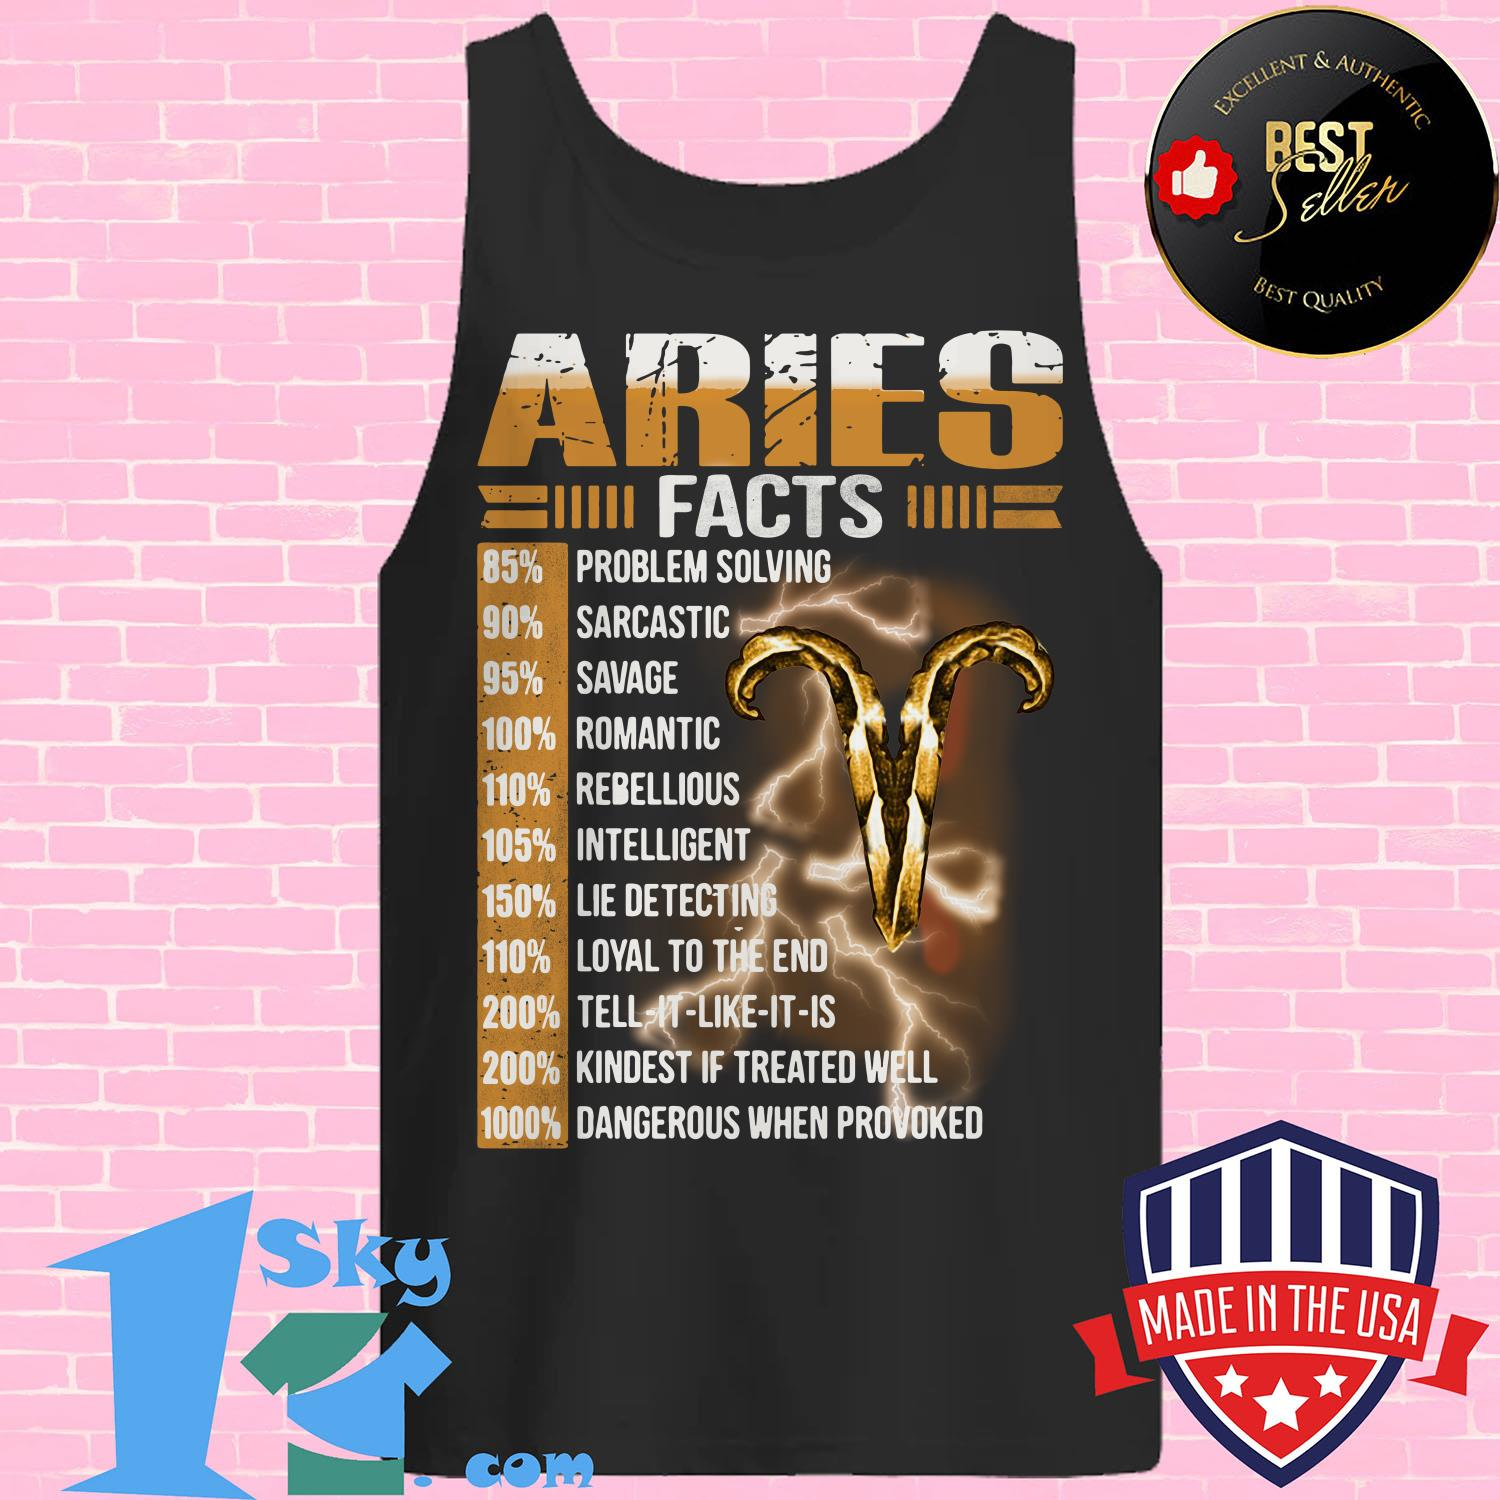 aries facts 85 problem solving 90 sarcastic 95 savage tank top - Aries facts 85% problem solving 90% sarcastic 95% savage shirt